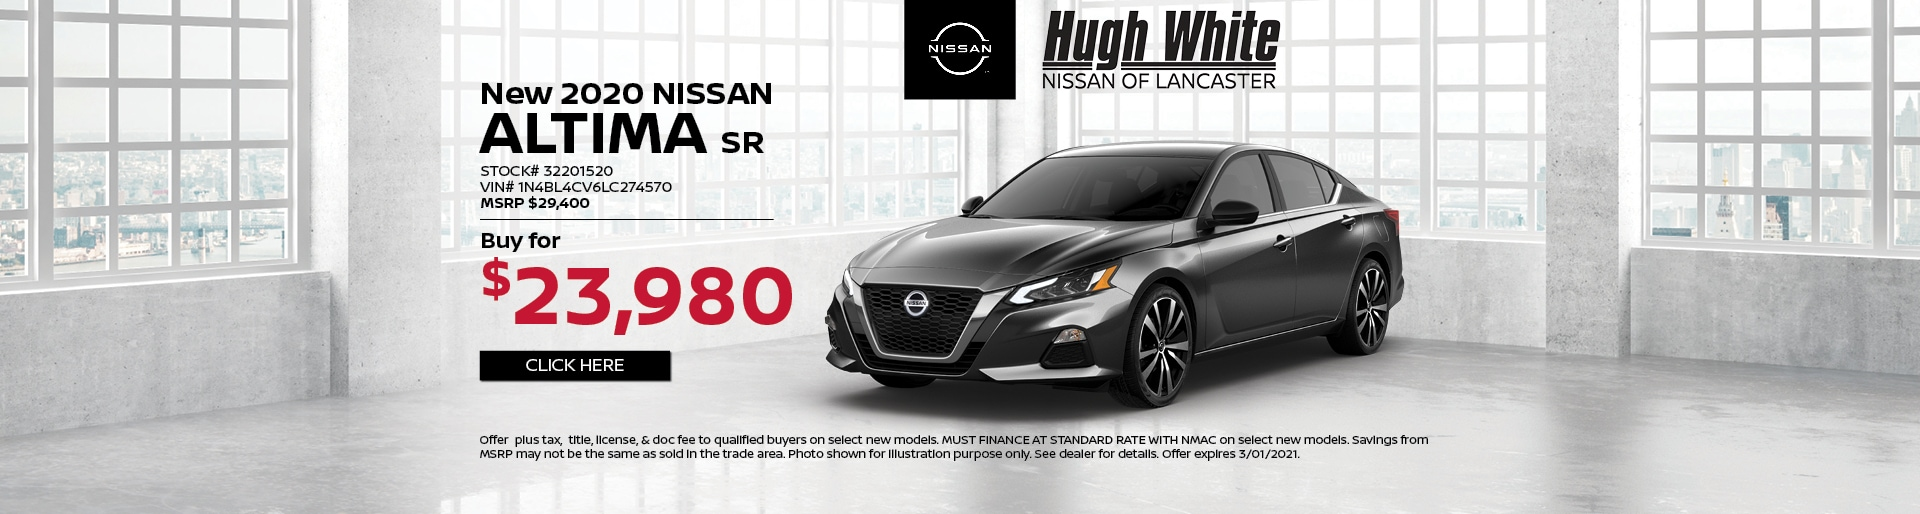 2020 Nissan Altima Special Offer | Hugh White Nissan Lancaster, OH